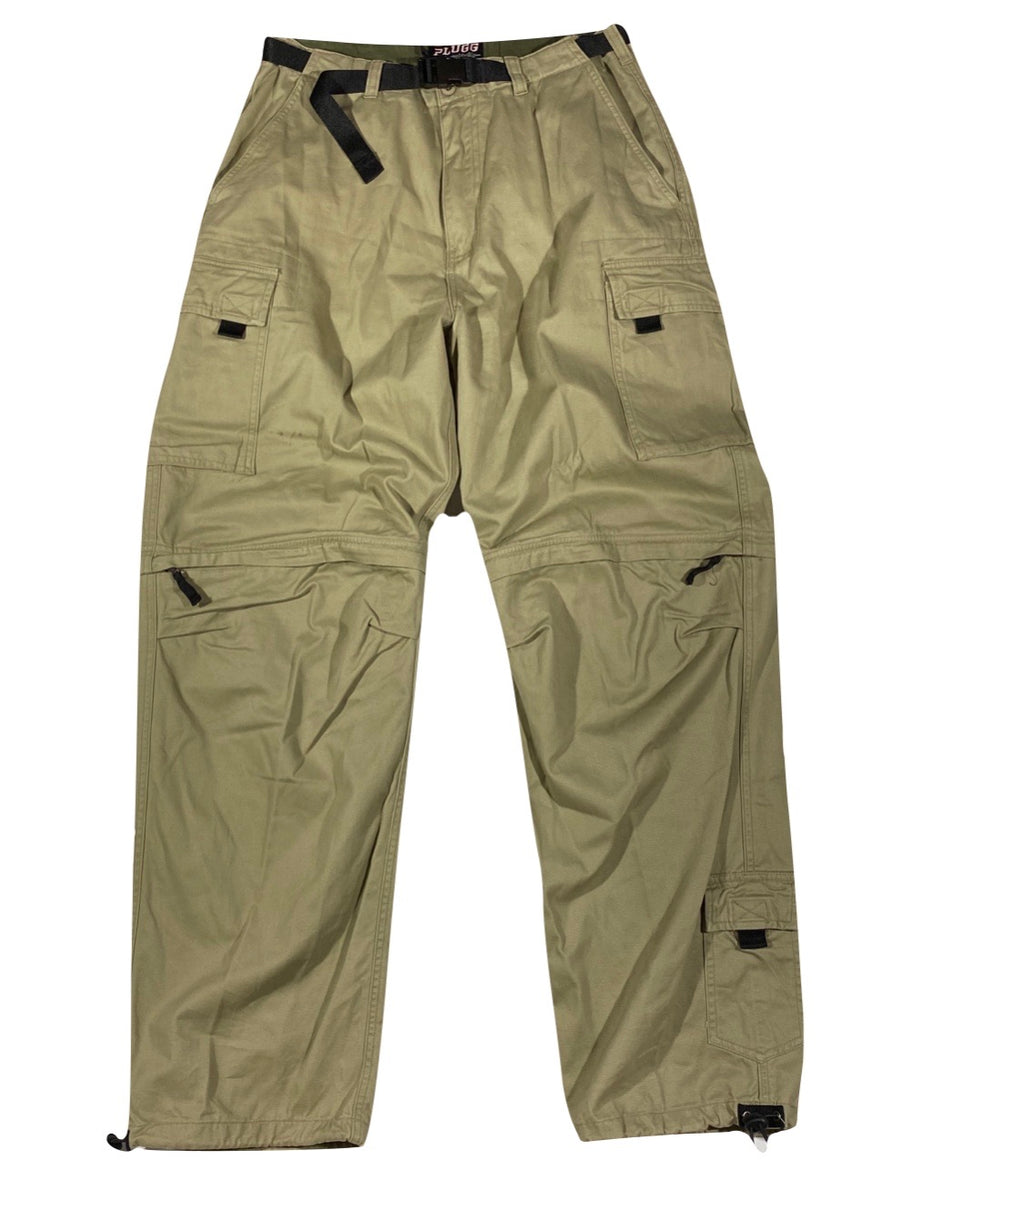 Cotton cynch zip off cargos. XL